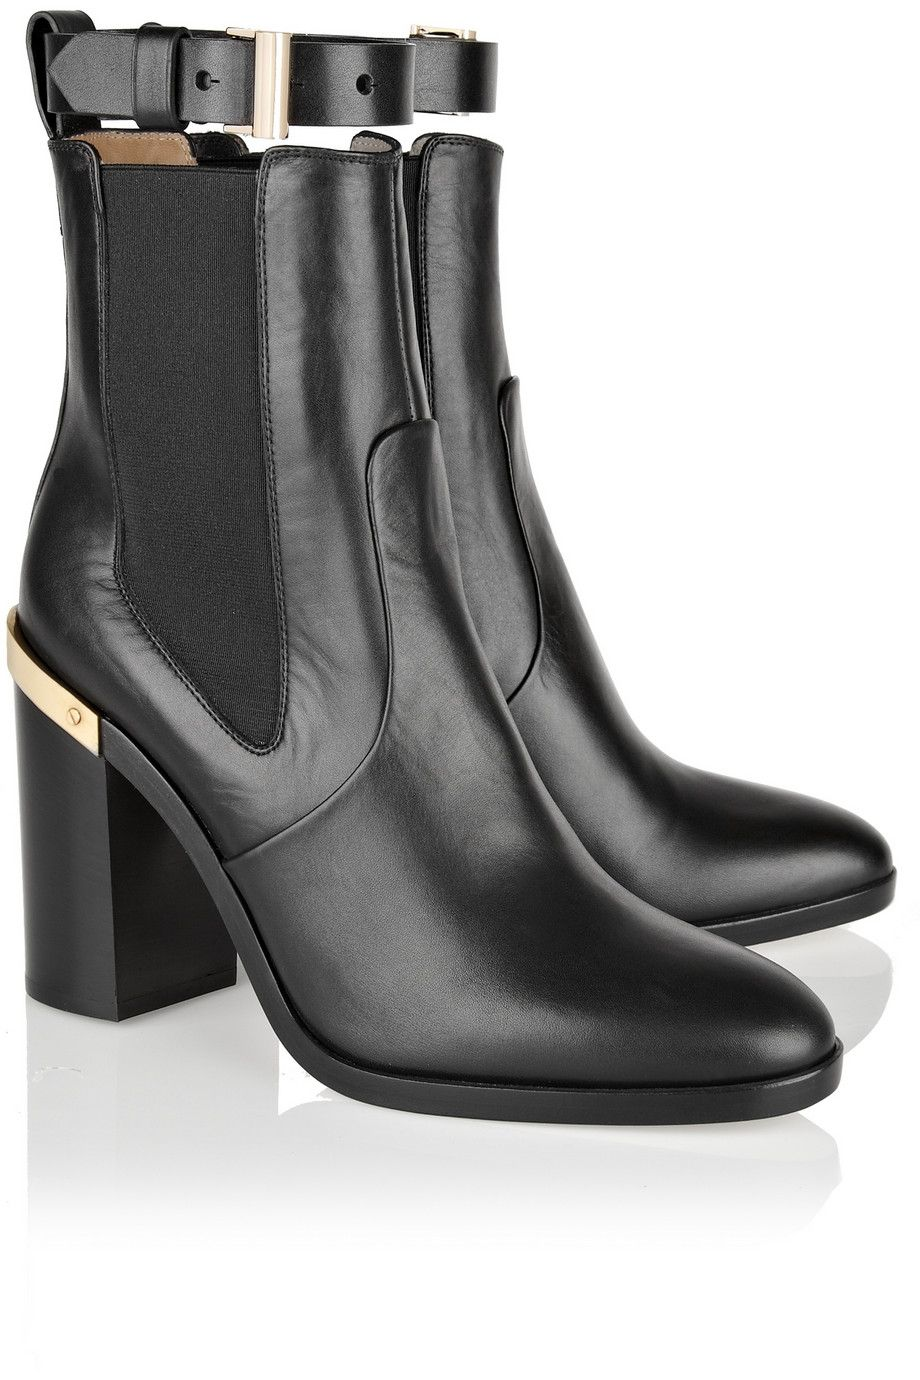 REED KRAKOFF Leather Ankle Boots Z7eyYp6bJn